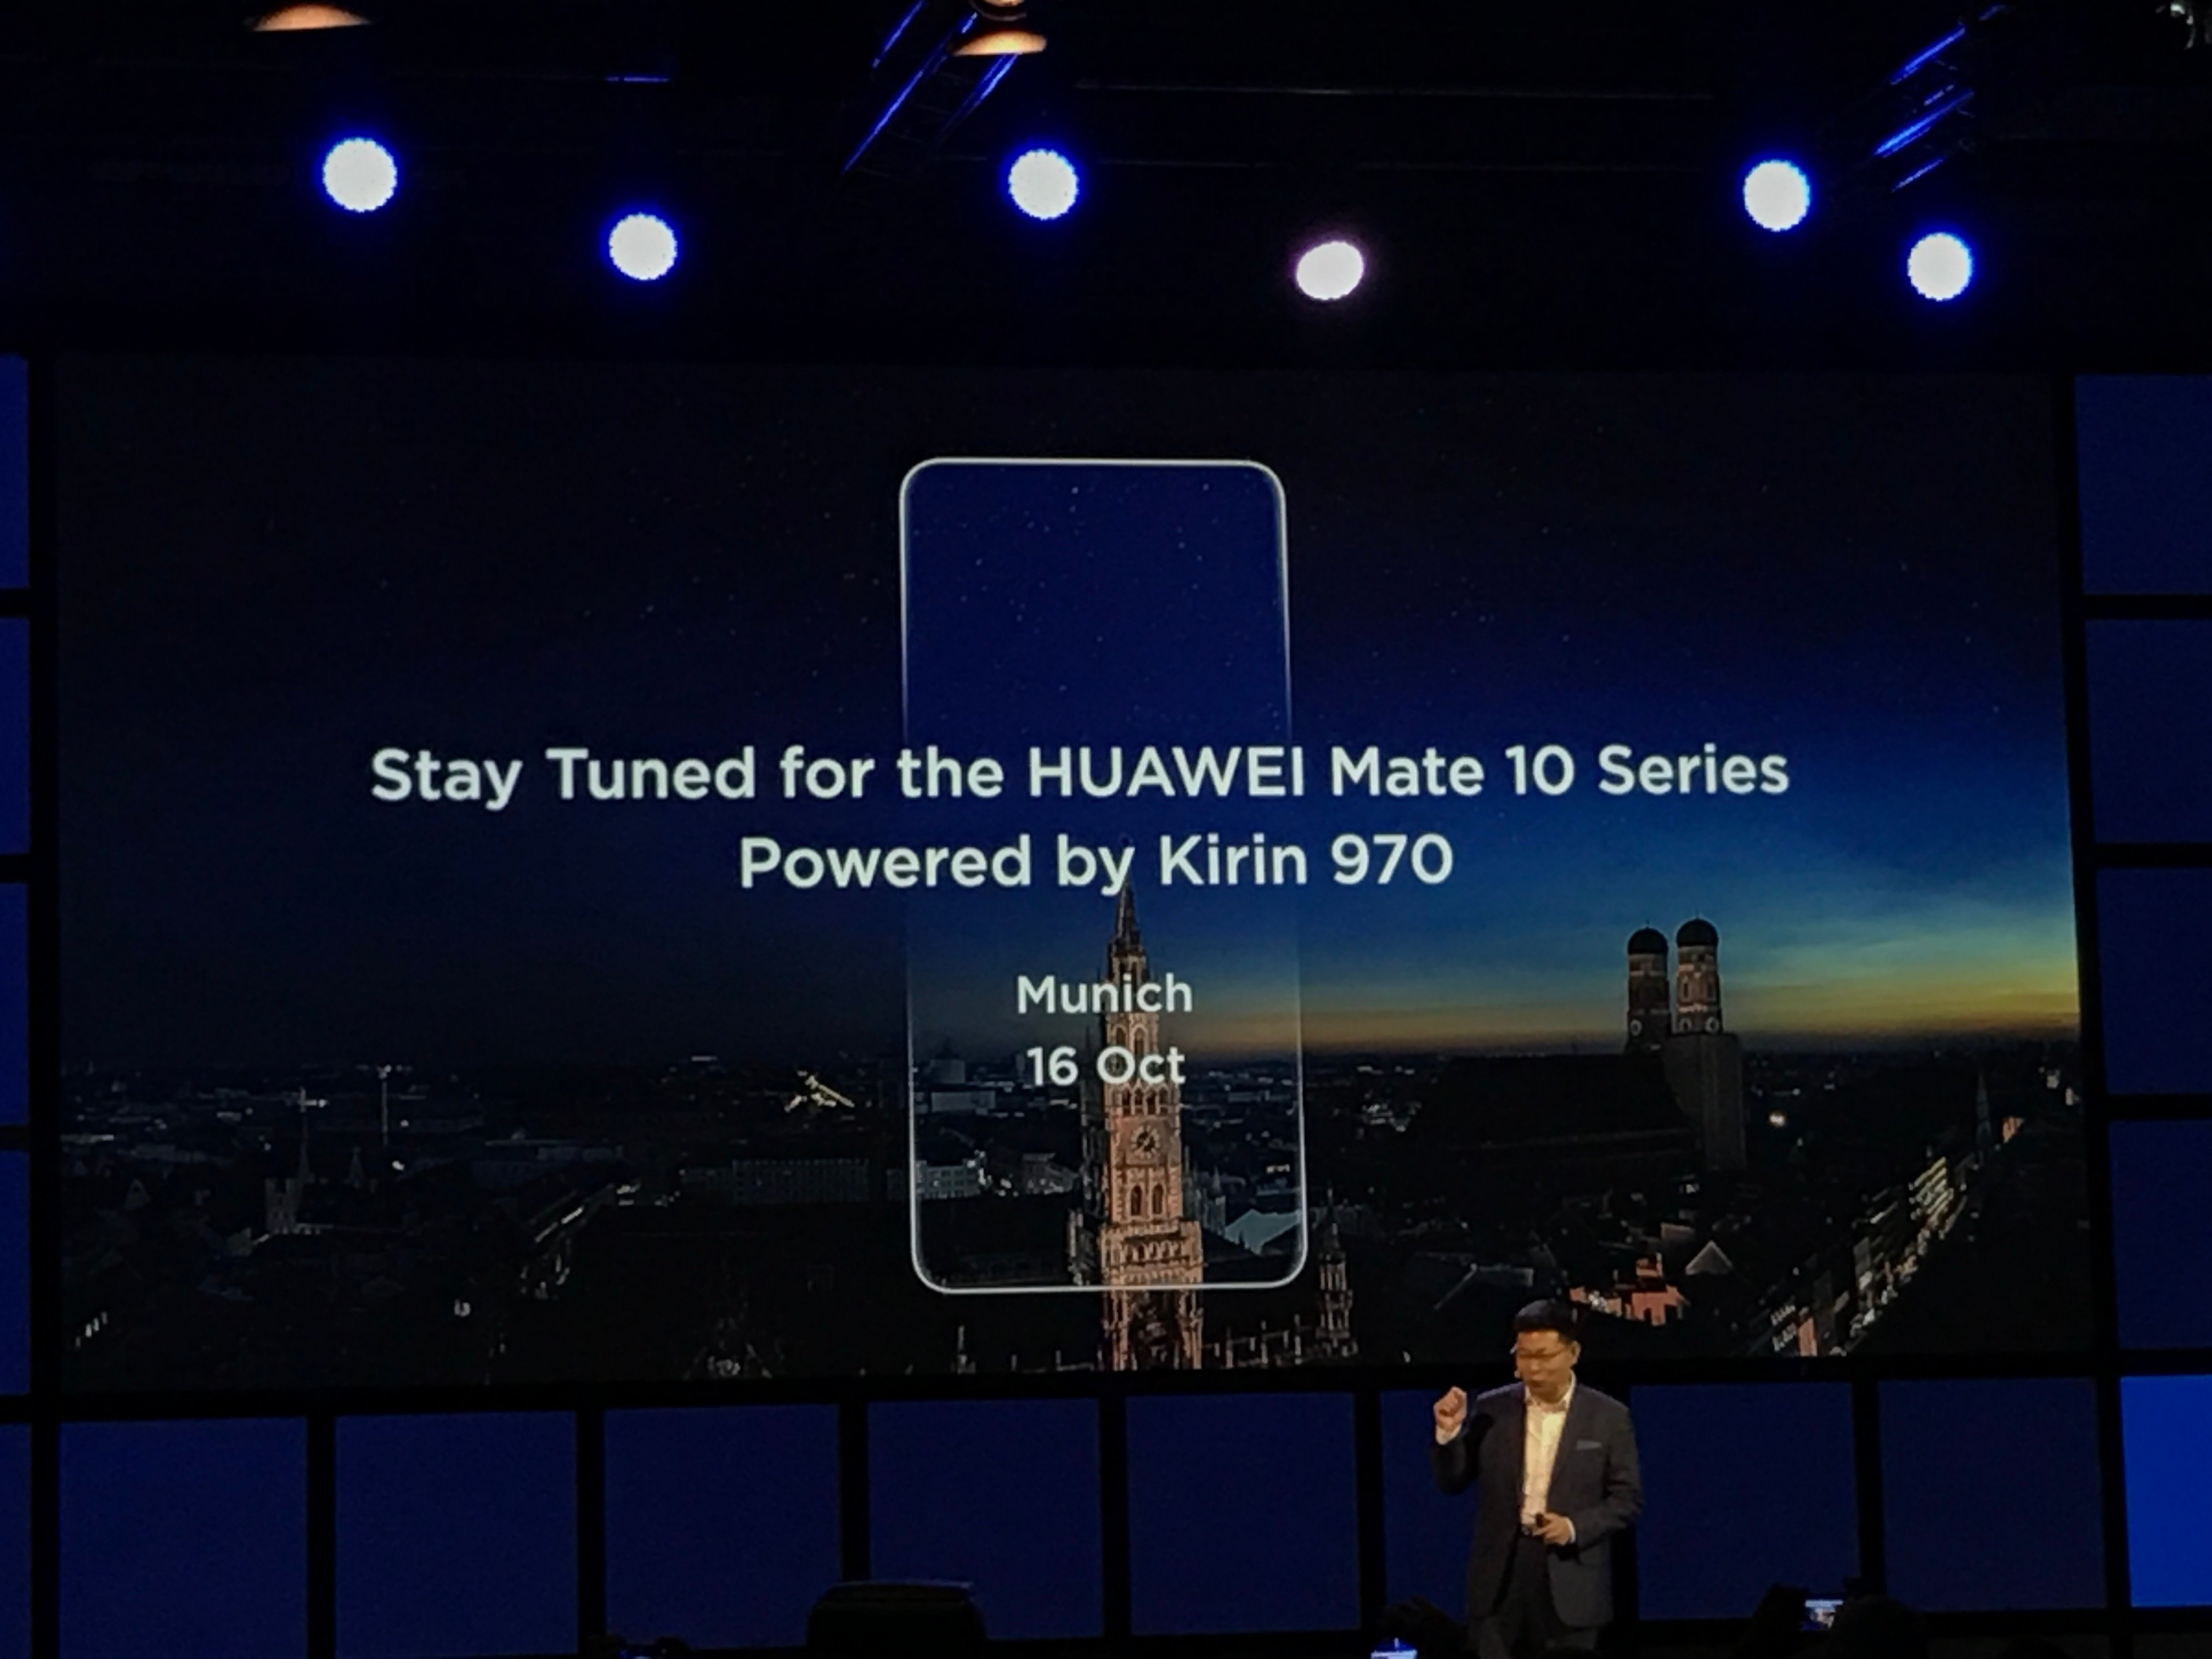 Huawei Mate 10 : officialisé le 16 octobre avec son écran « full display »